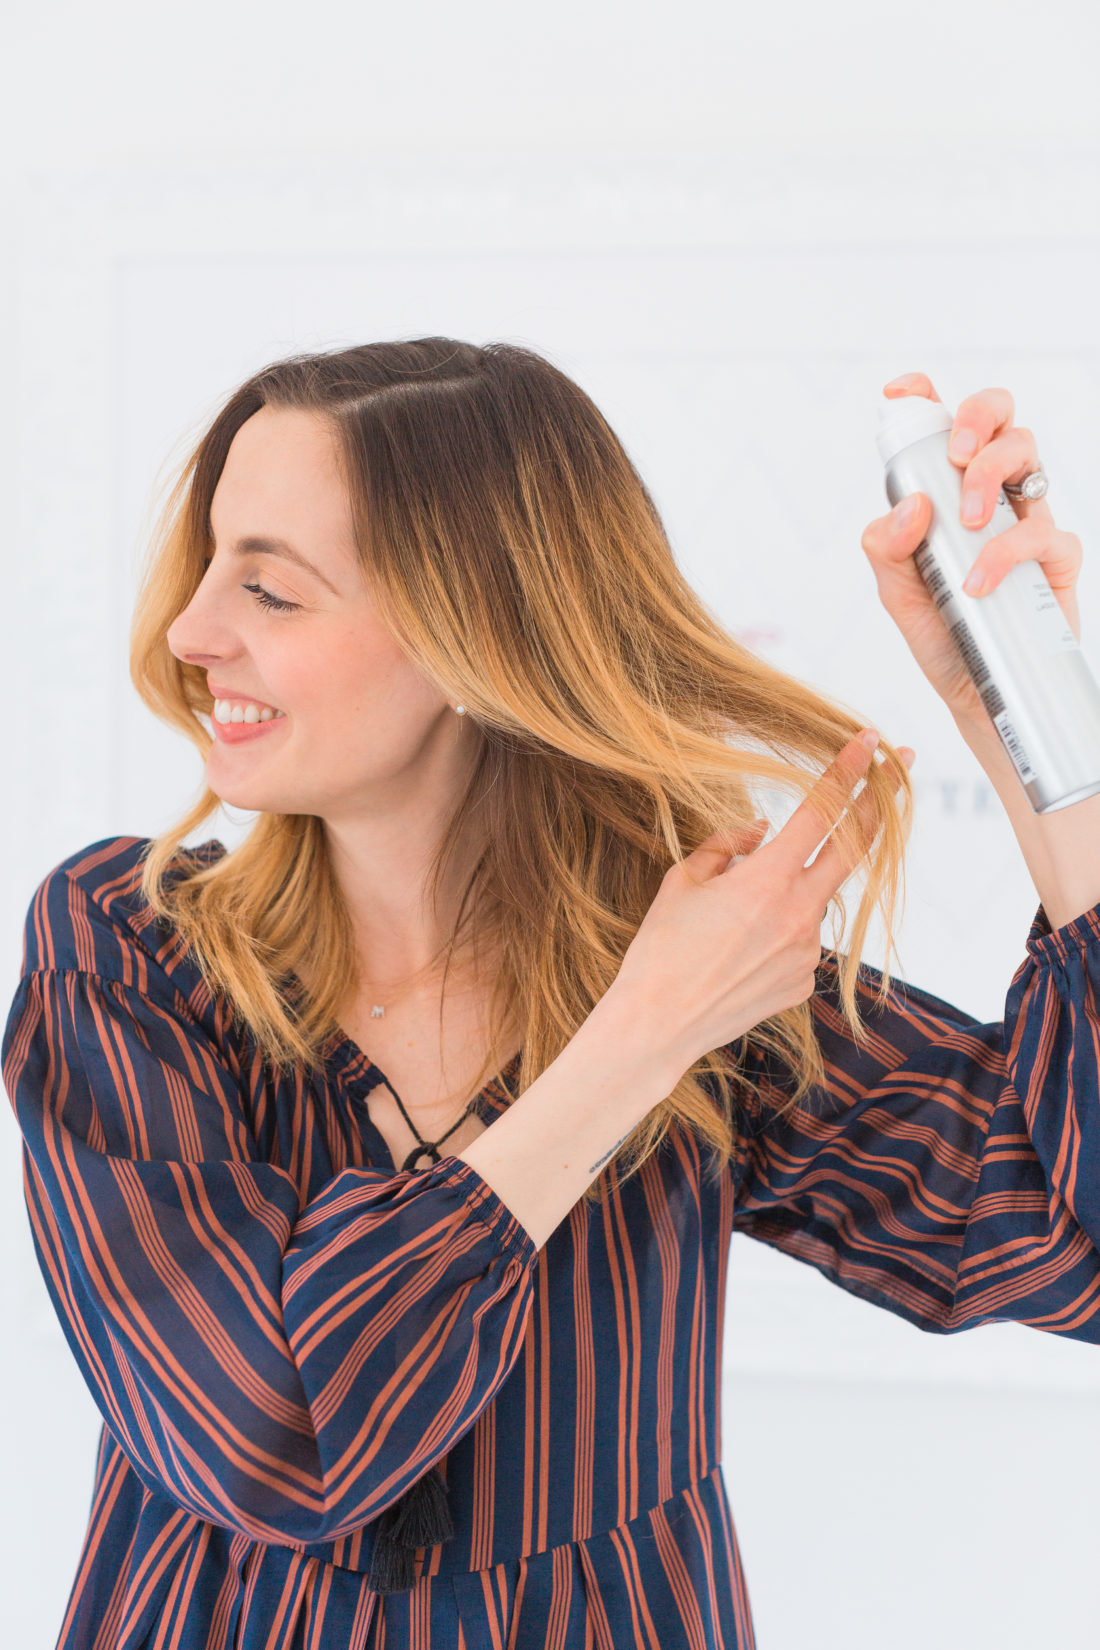 Eva Amurri Martino sprays some texturizing hairspray in to her freshly styled hair